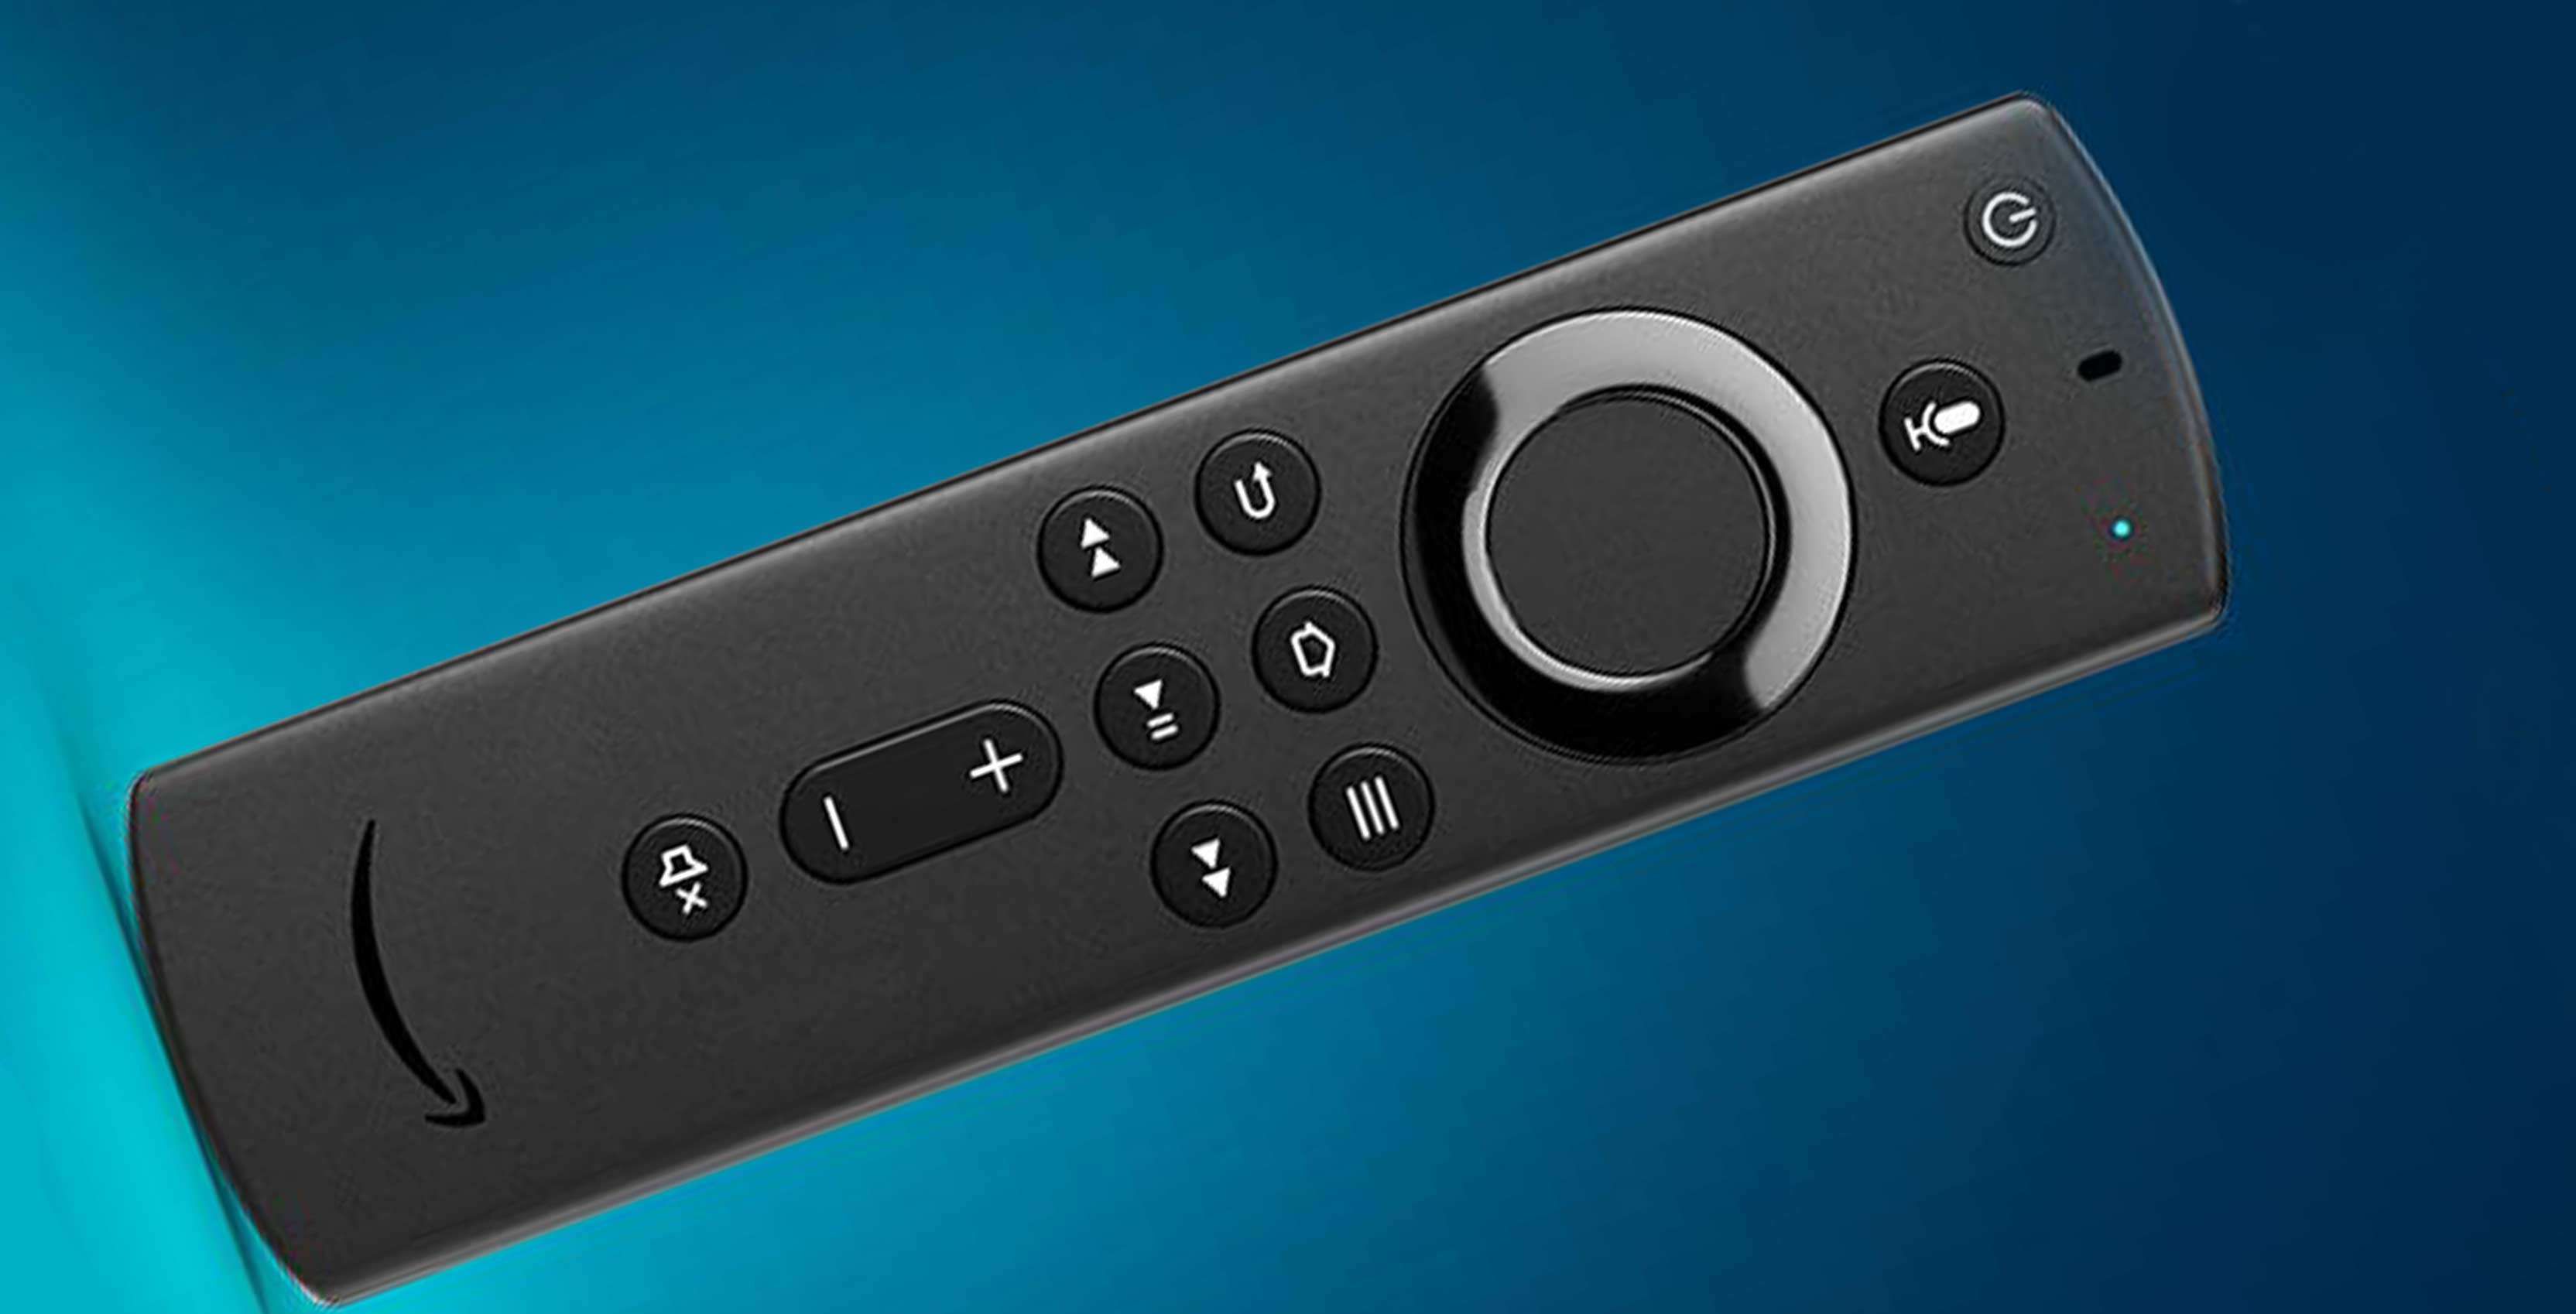 Amazon Fire TV Stick 4K on sale at Canadian retailers